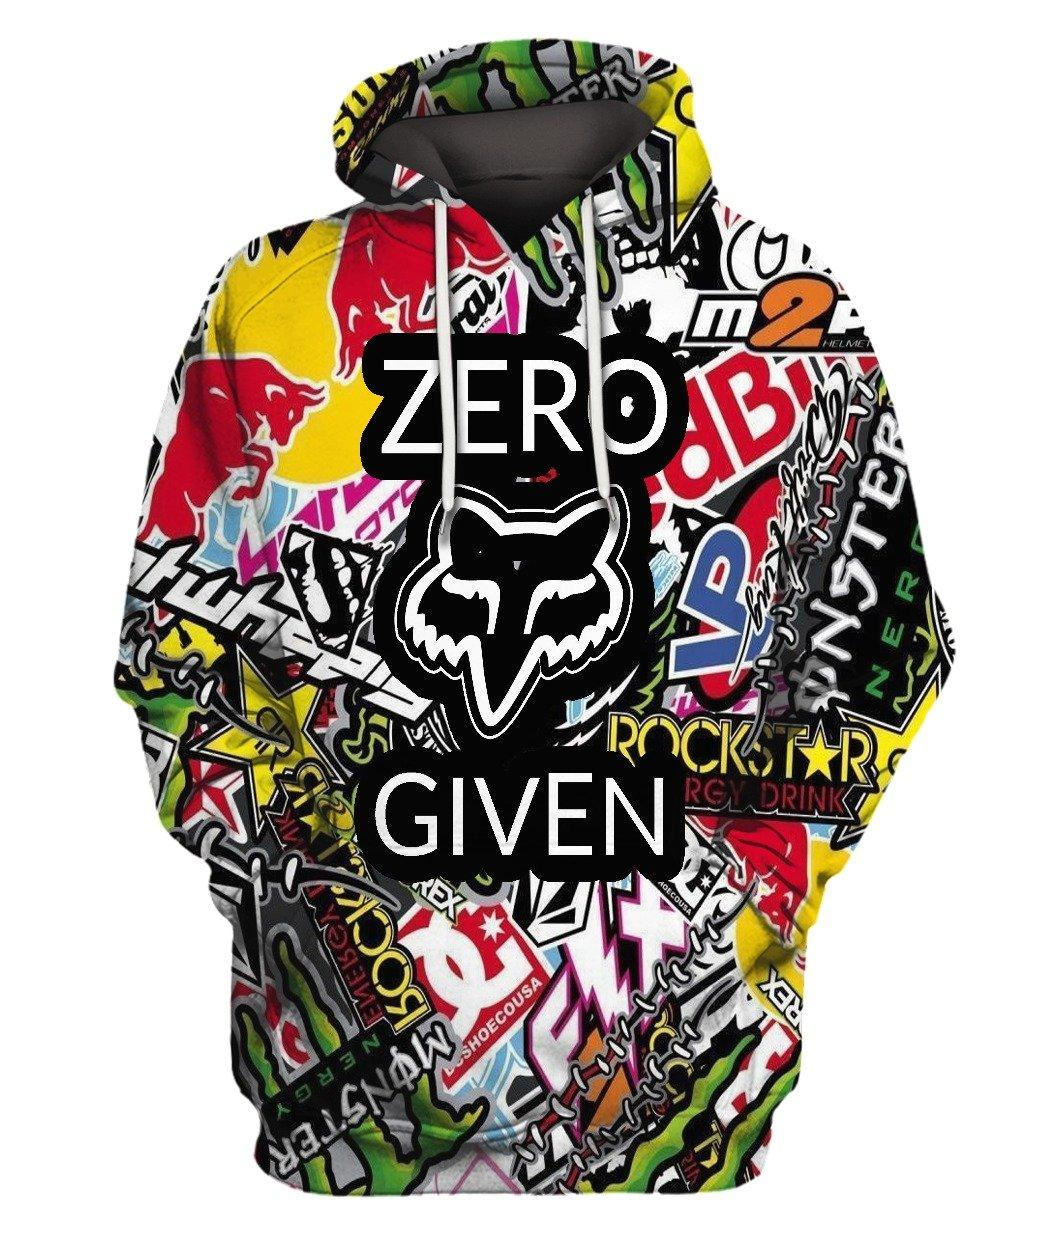 Fox Zero Given Full 3d 3d Graphic Printed Tshirt Hoodie Up To 5xl